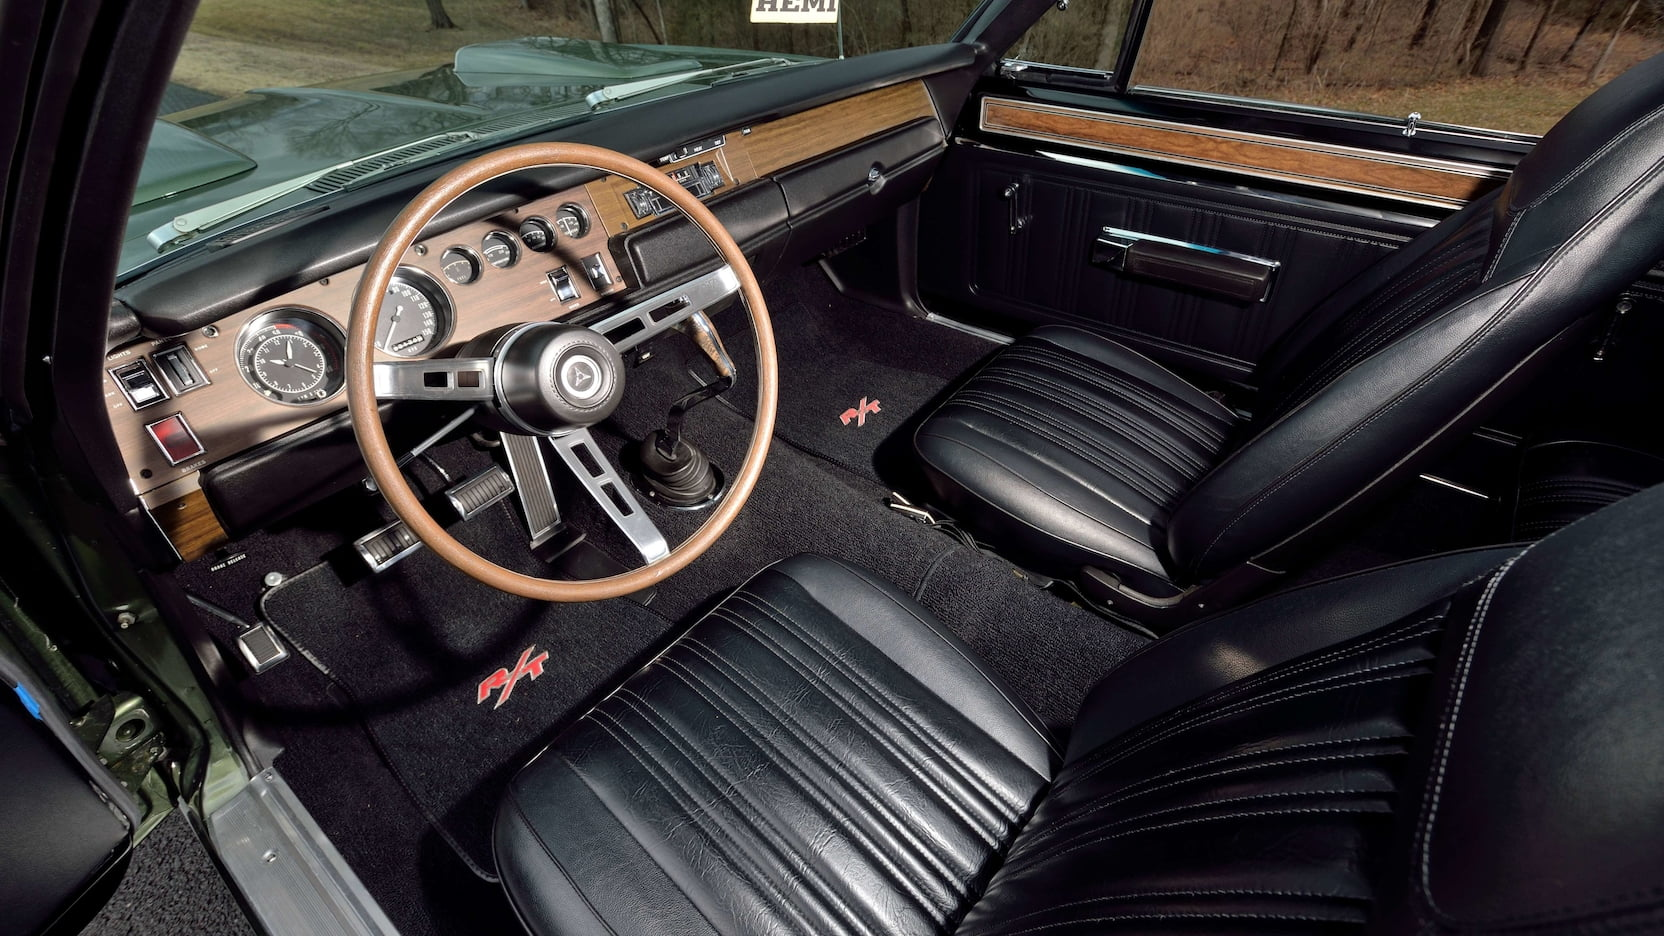 1970 Dodge Hemi Coronet RT Interior